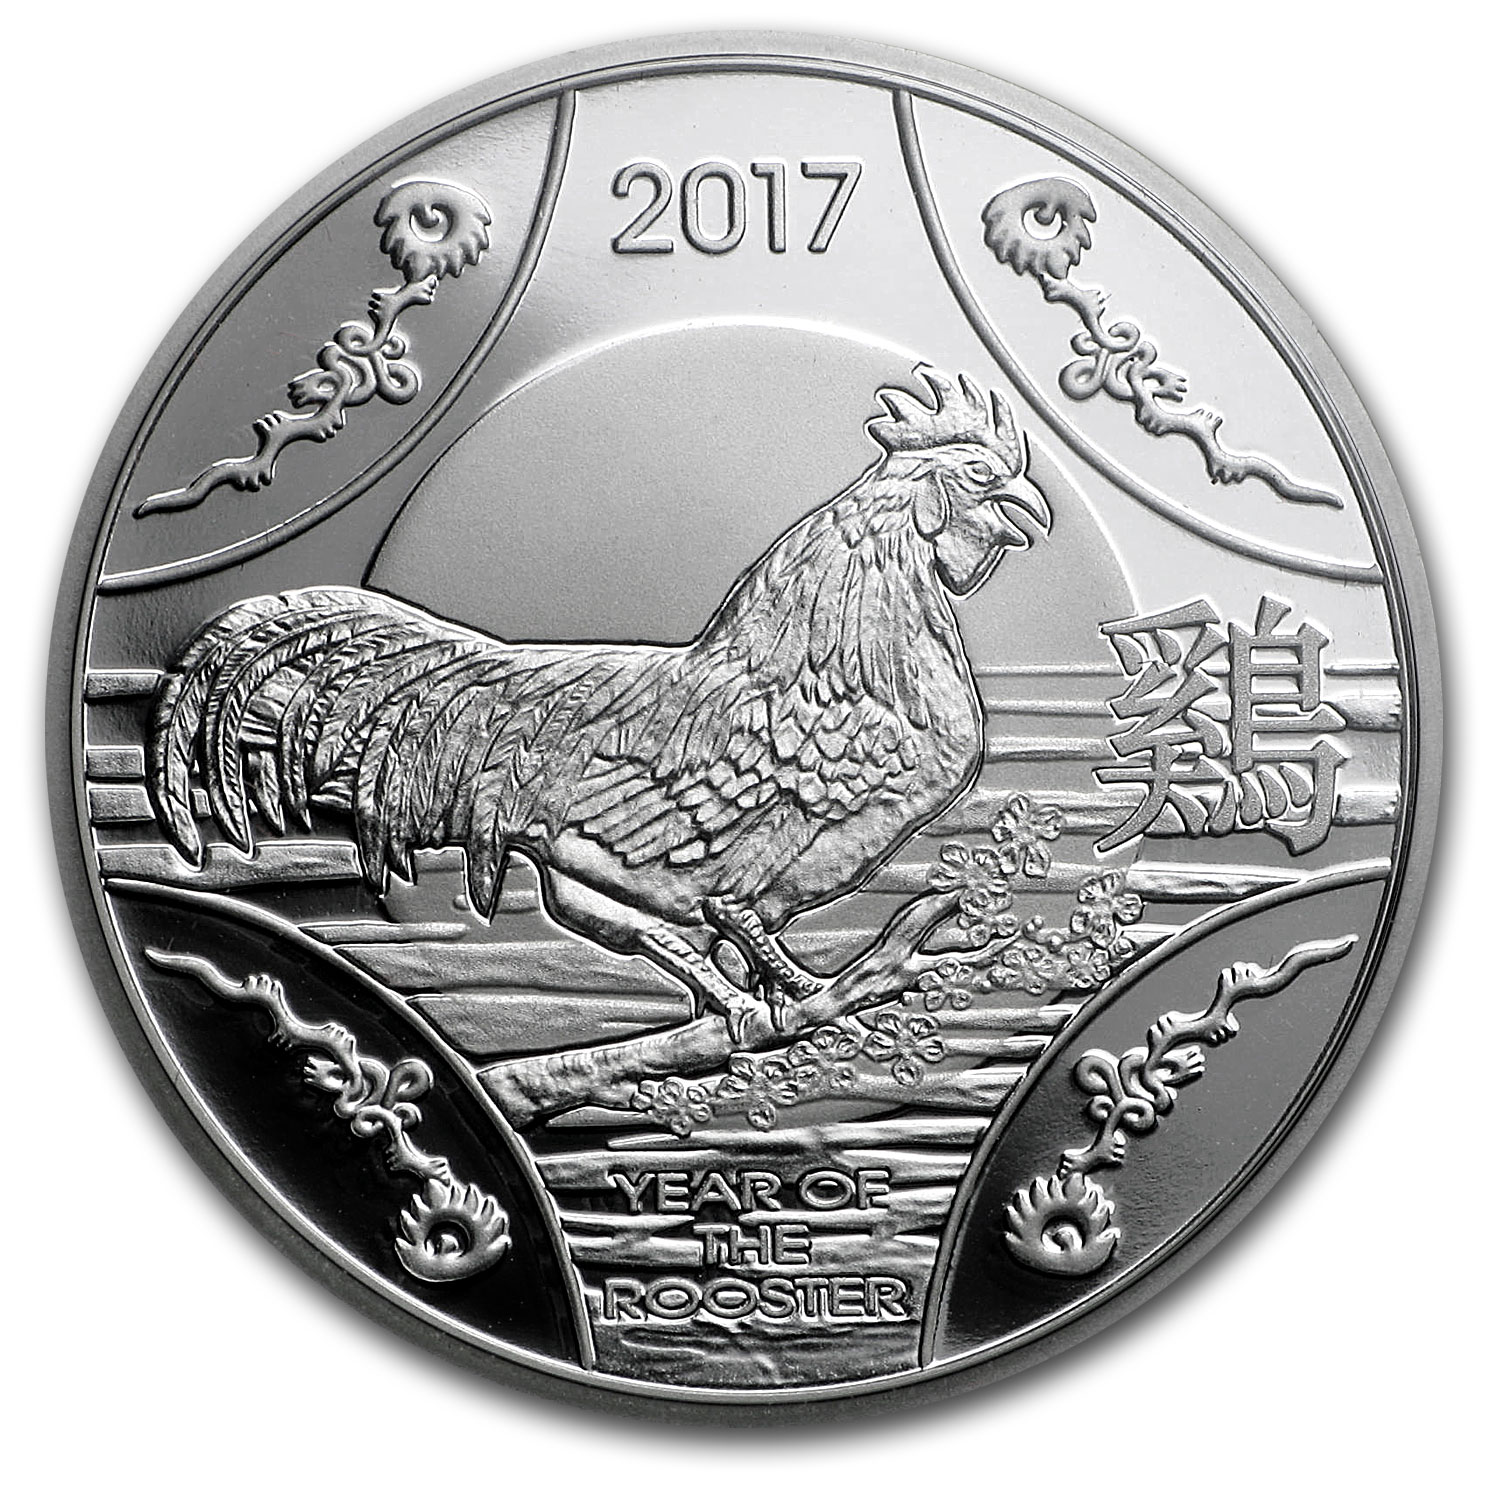 2017 Australia $1 Silver Year of the Rooster Proof